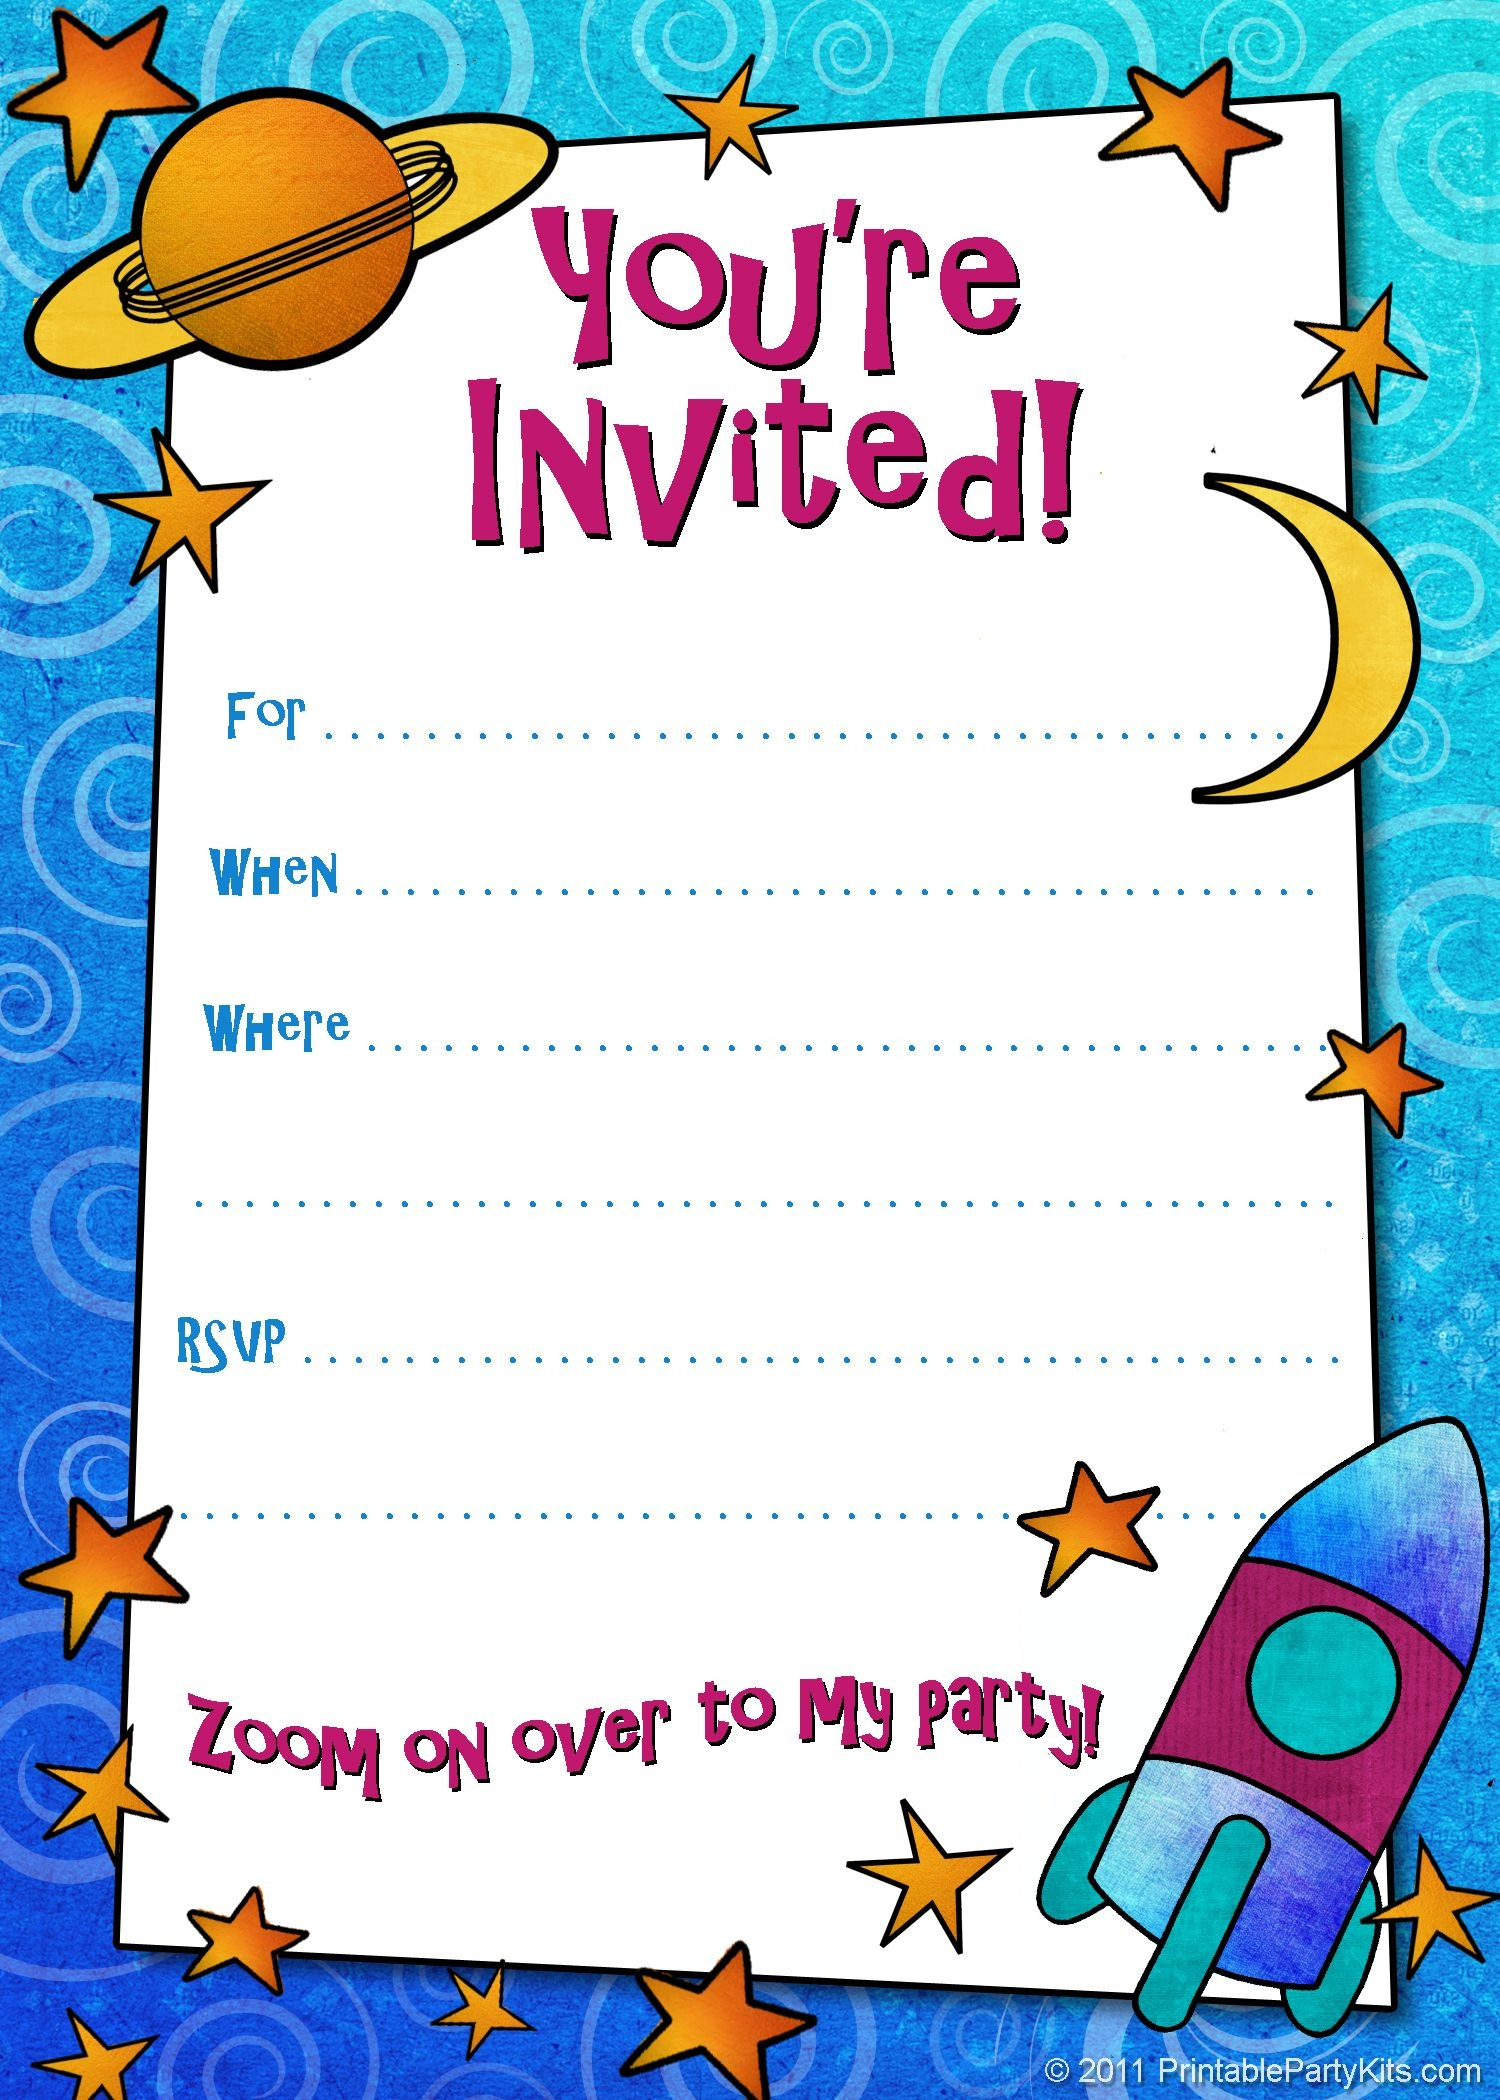 Free Printable Boys Birthday Party Invitations | Birthday Party - Free Printable Personalized Birthday Invitation Cards